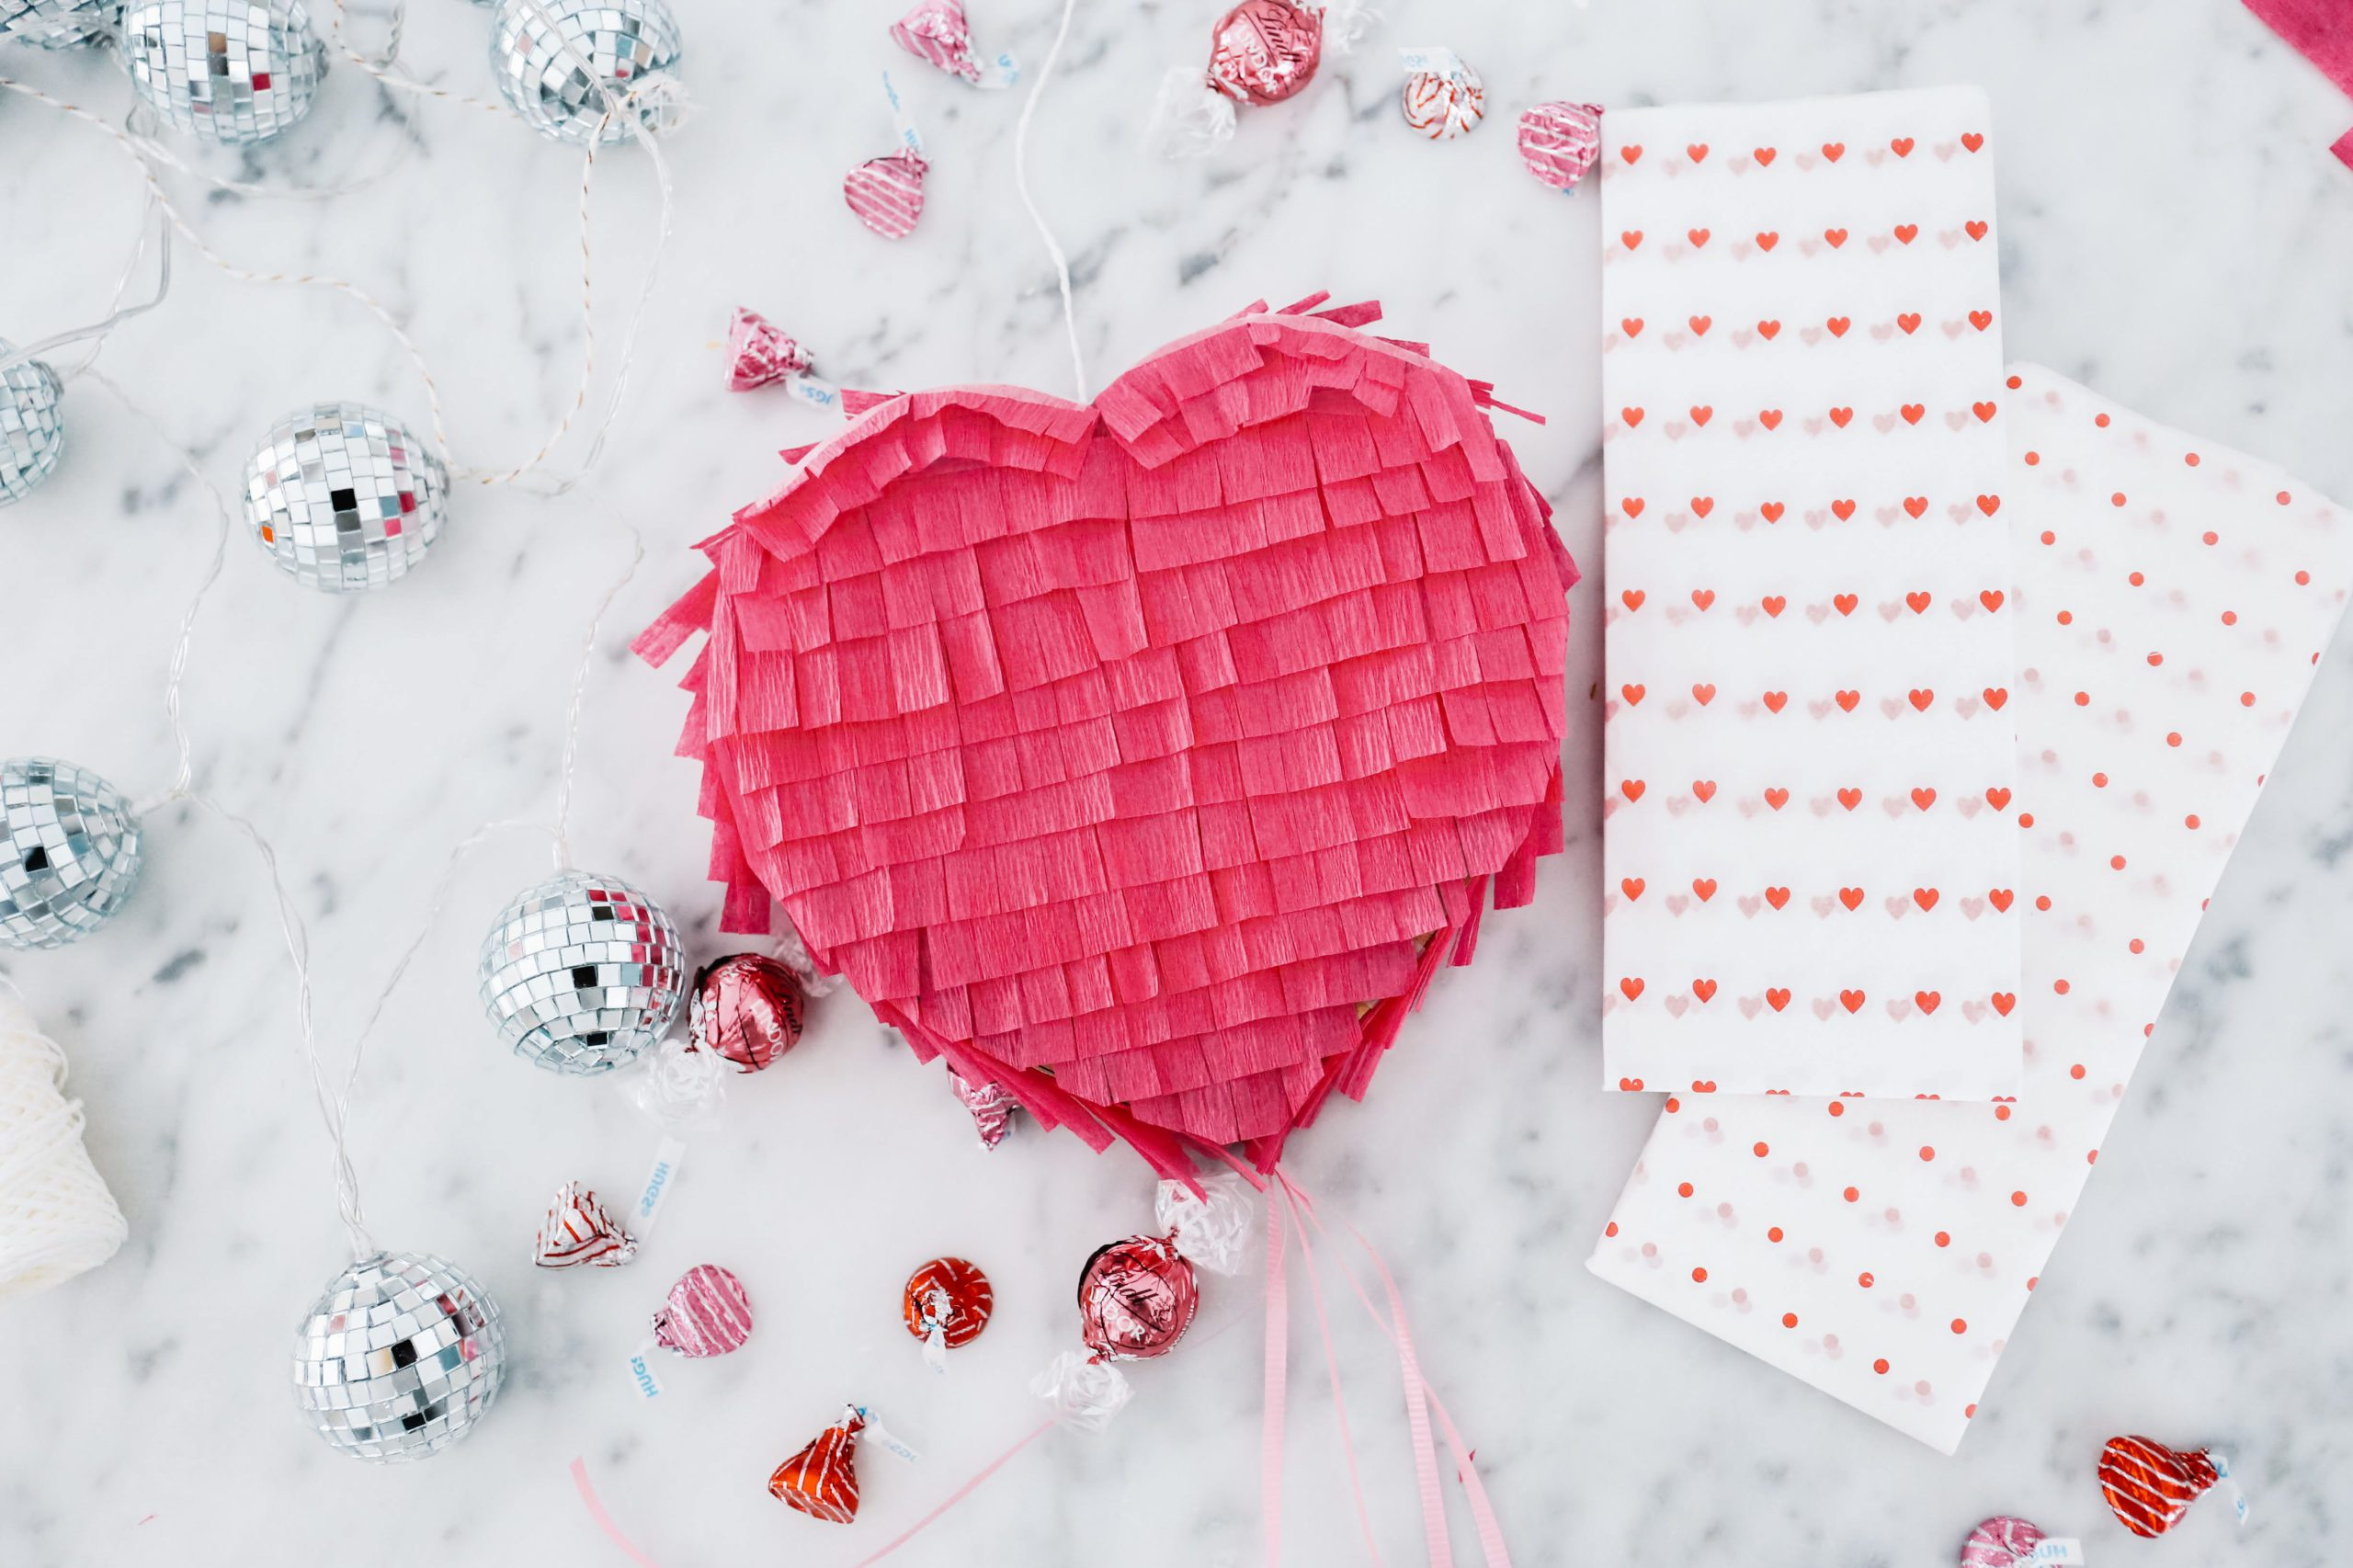 DIY Heart Pinata made out of cardboard